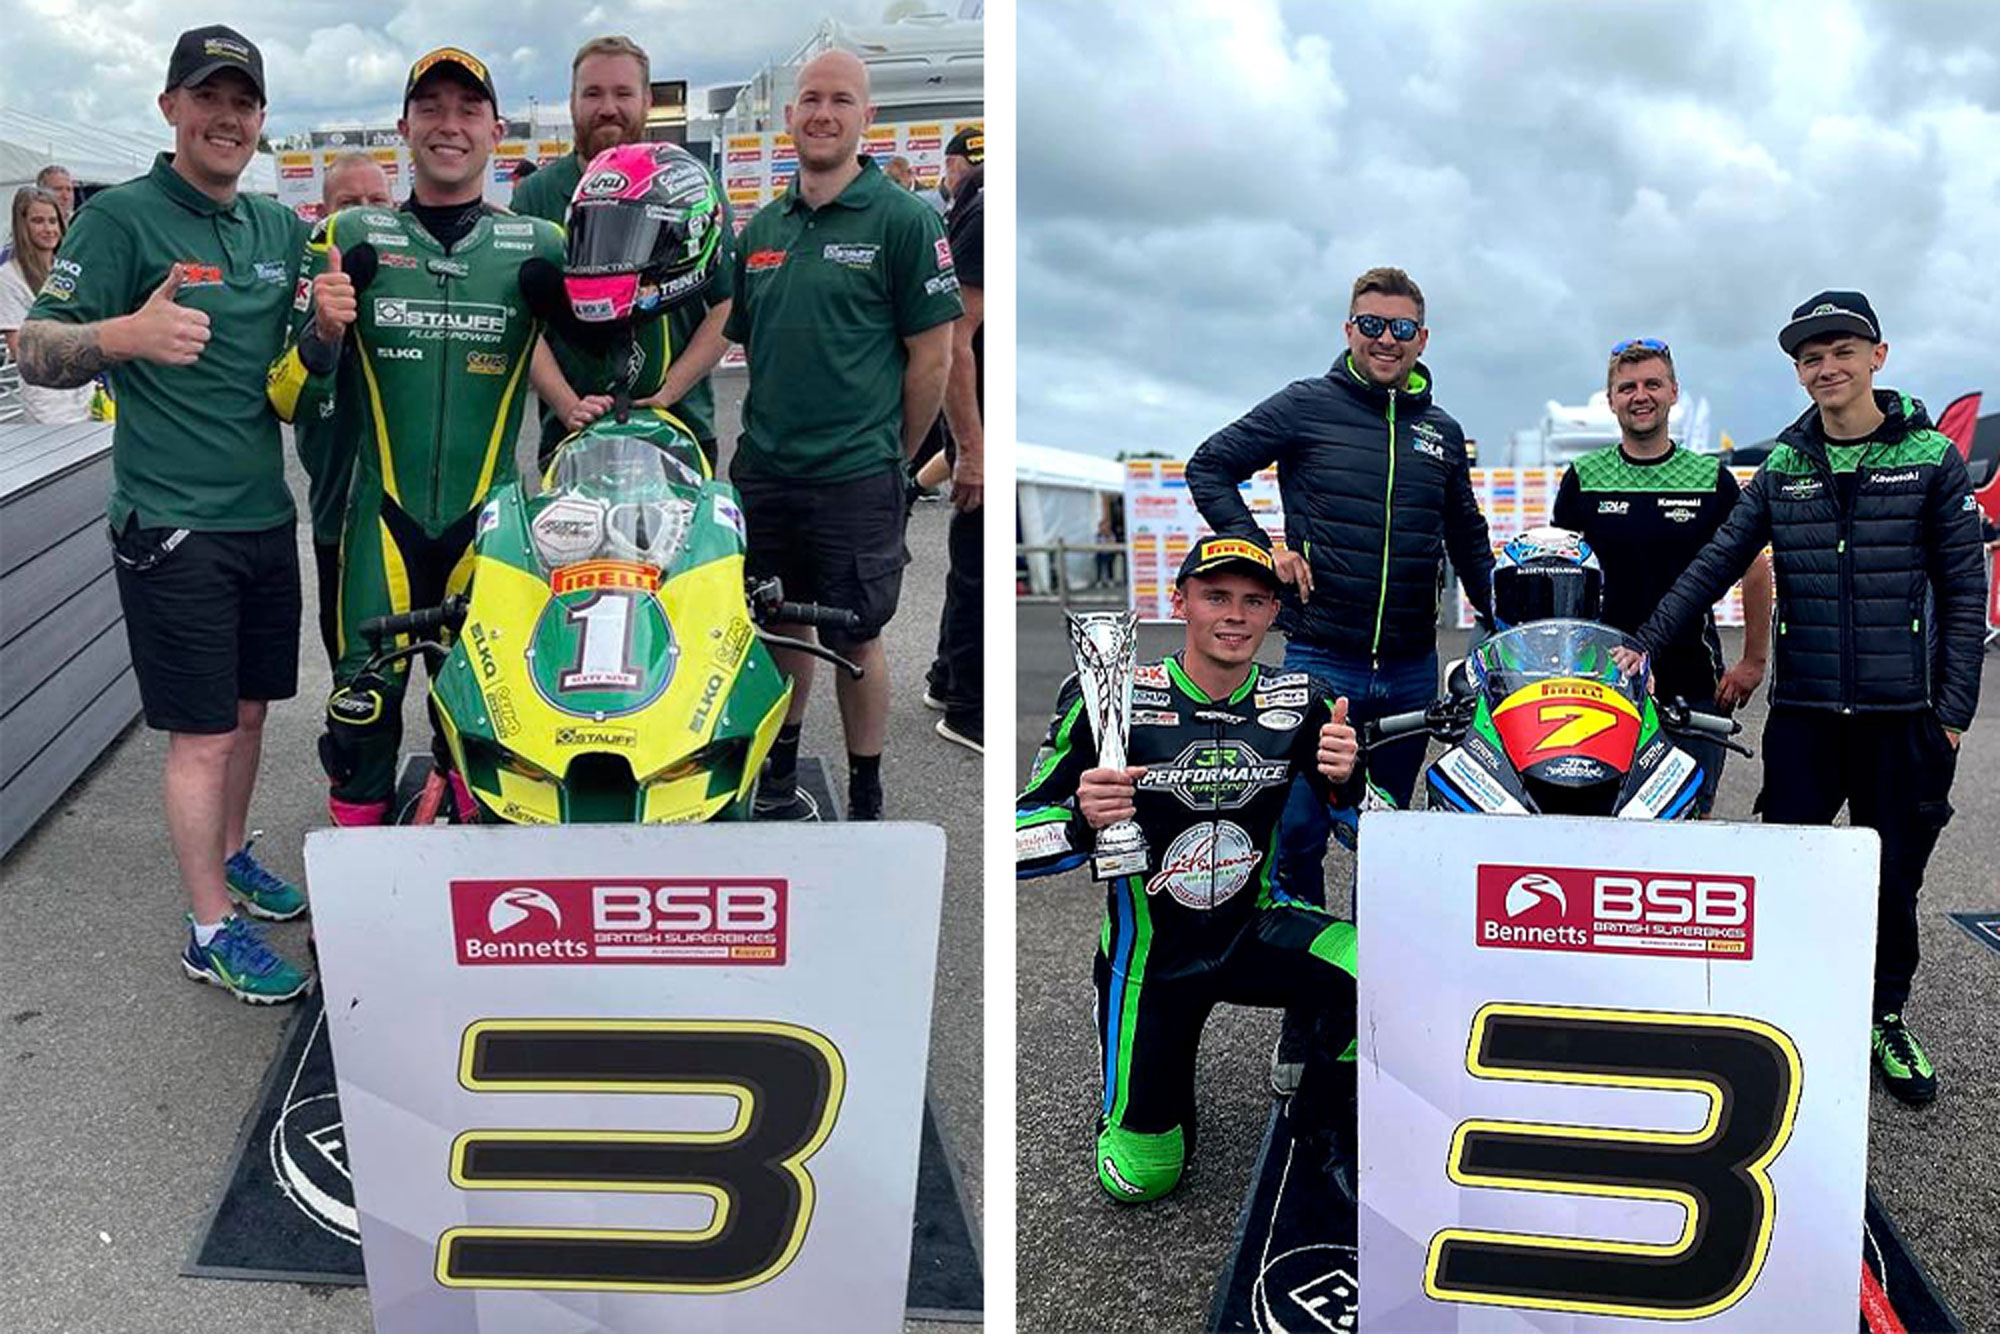 Chrissy Rouse and Liam Delves at Thruxton BSB 2021